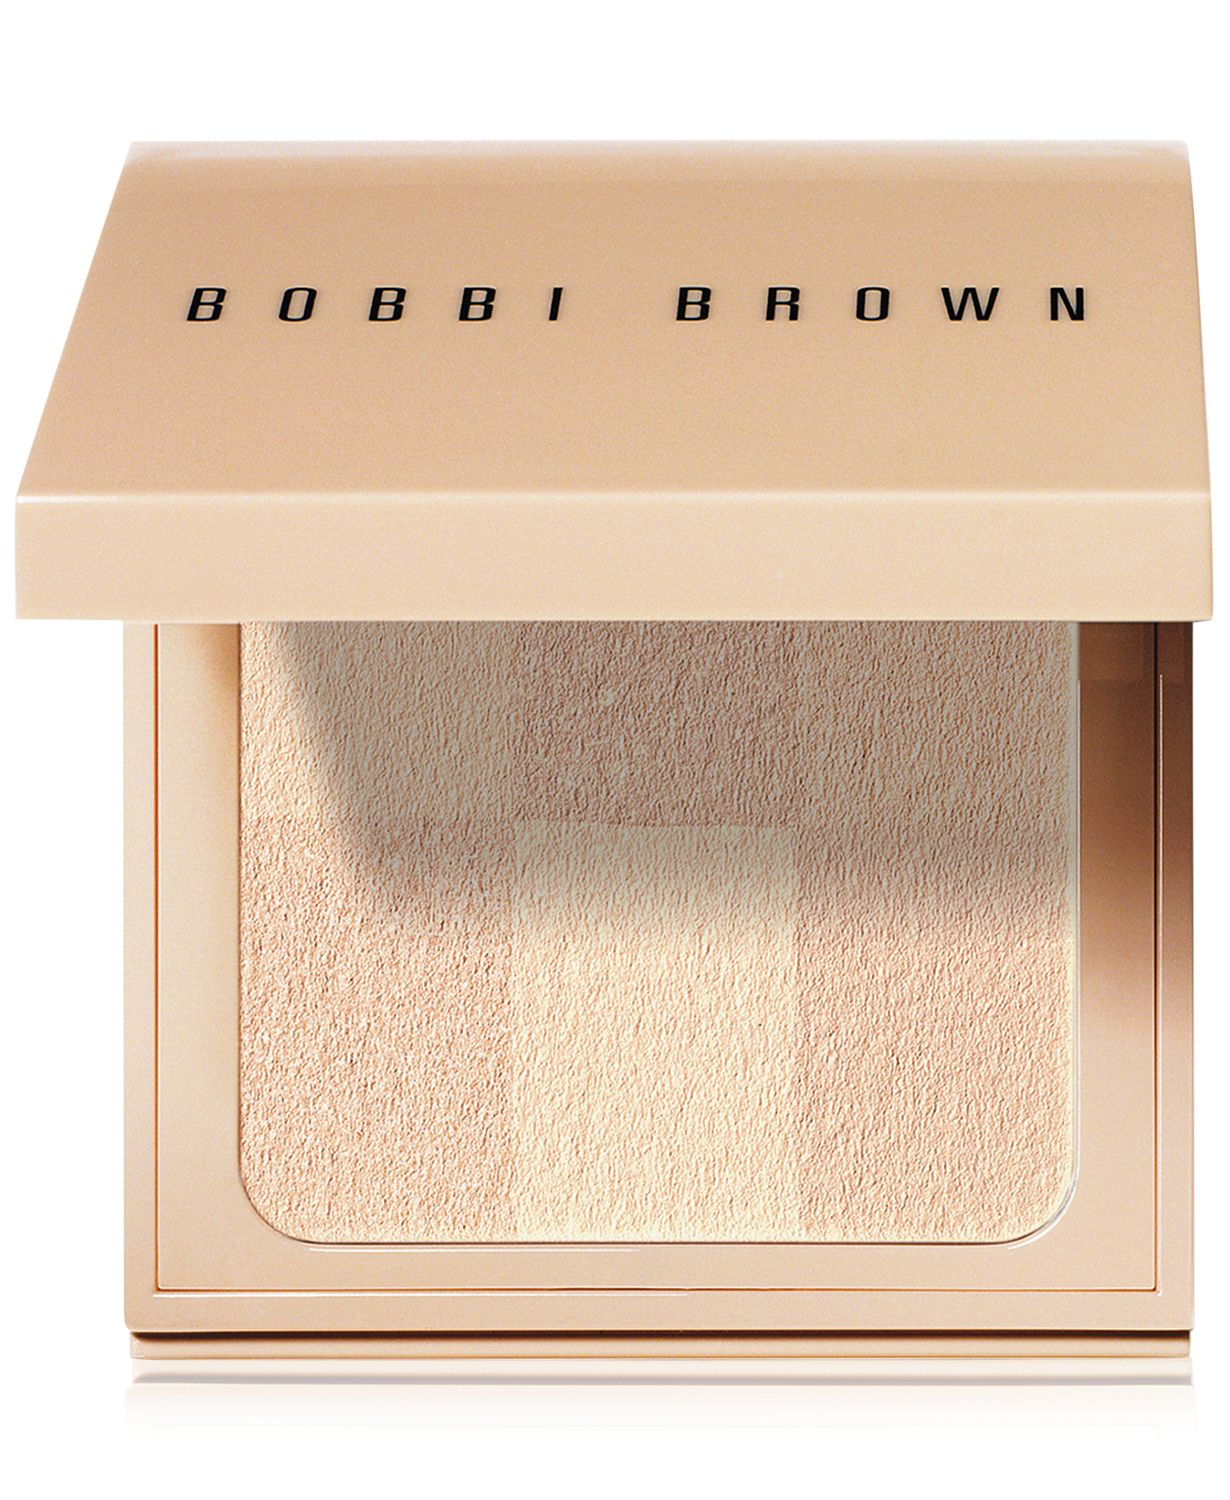 Bobbi Brown Nude Finish Illuminating Powder -  - come discover Over 50 Daily Beauty: Gentle Rhythms for Skin, Makeup & Hair As Well As Quotes to Pin and Outfit Ideas.